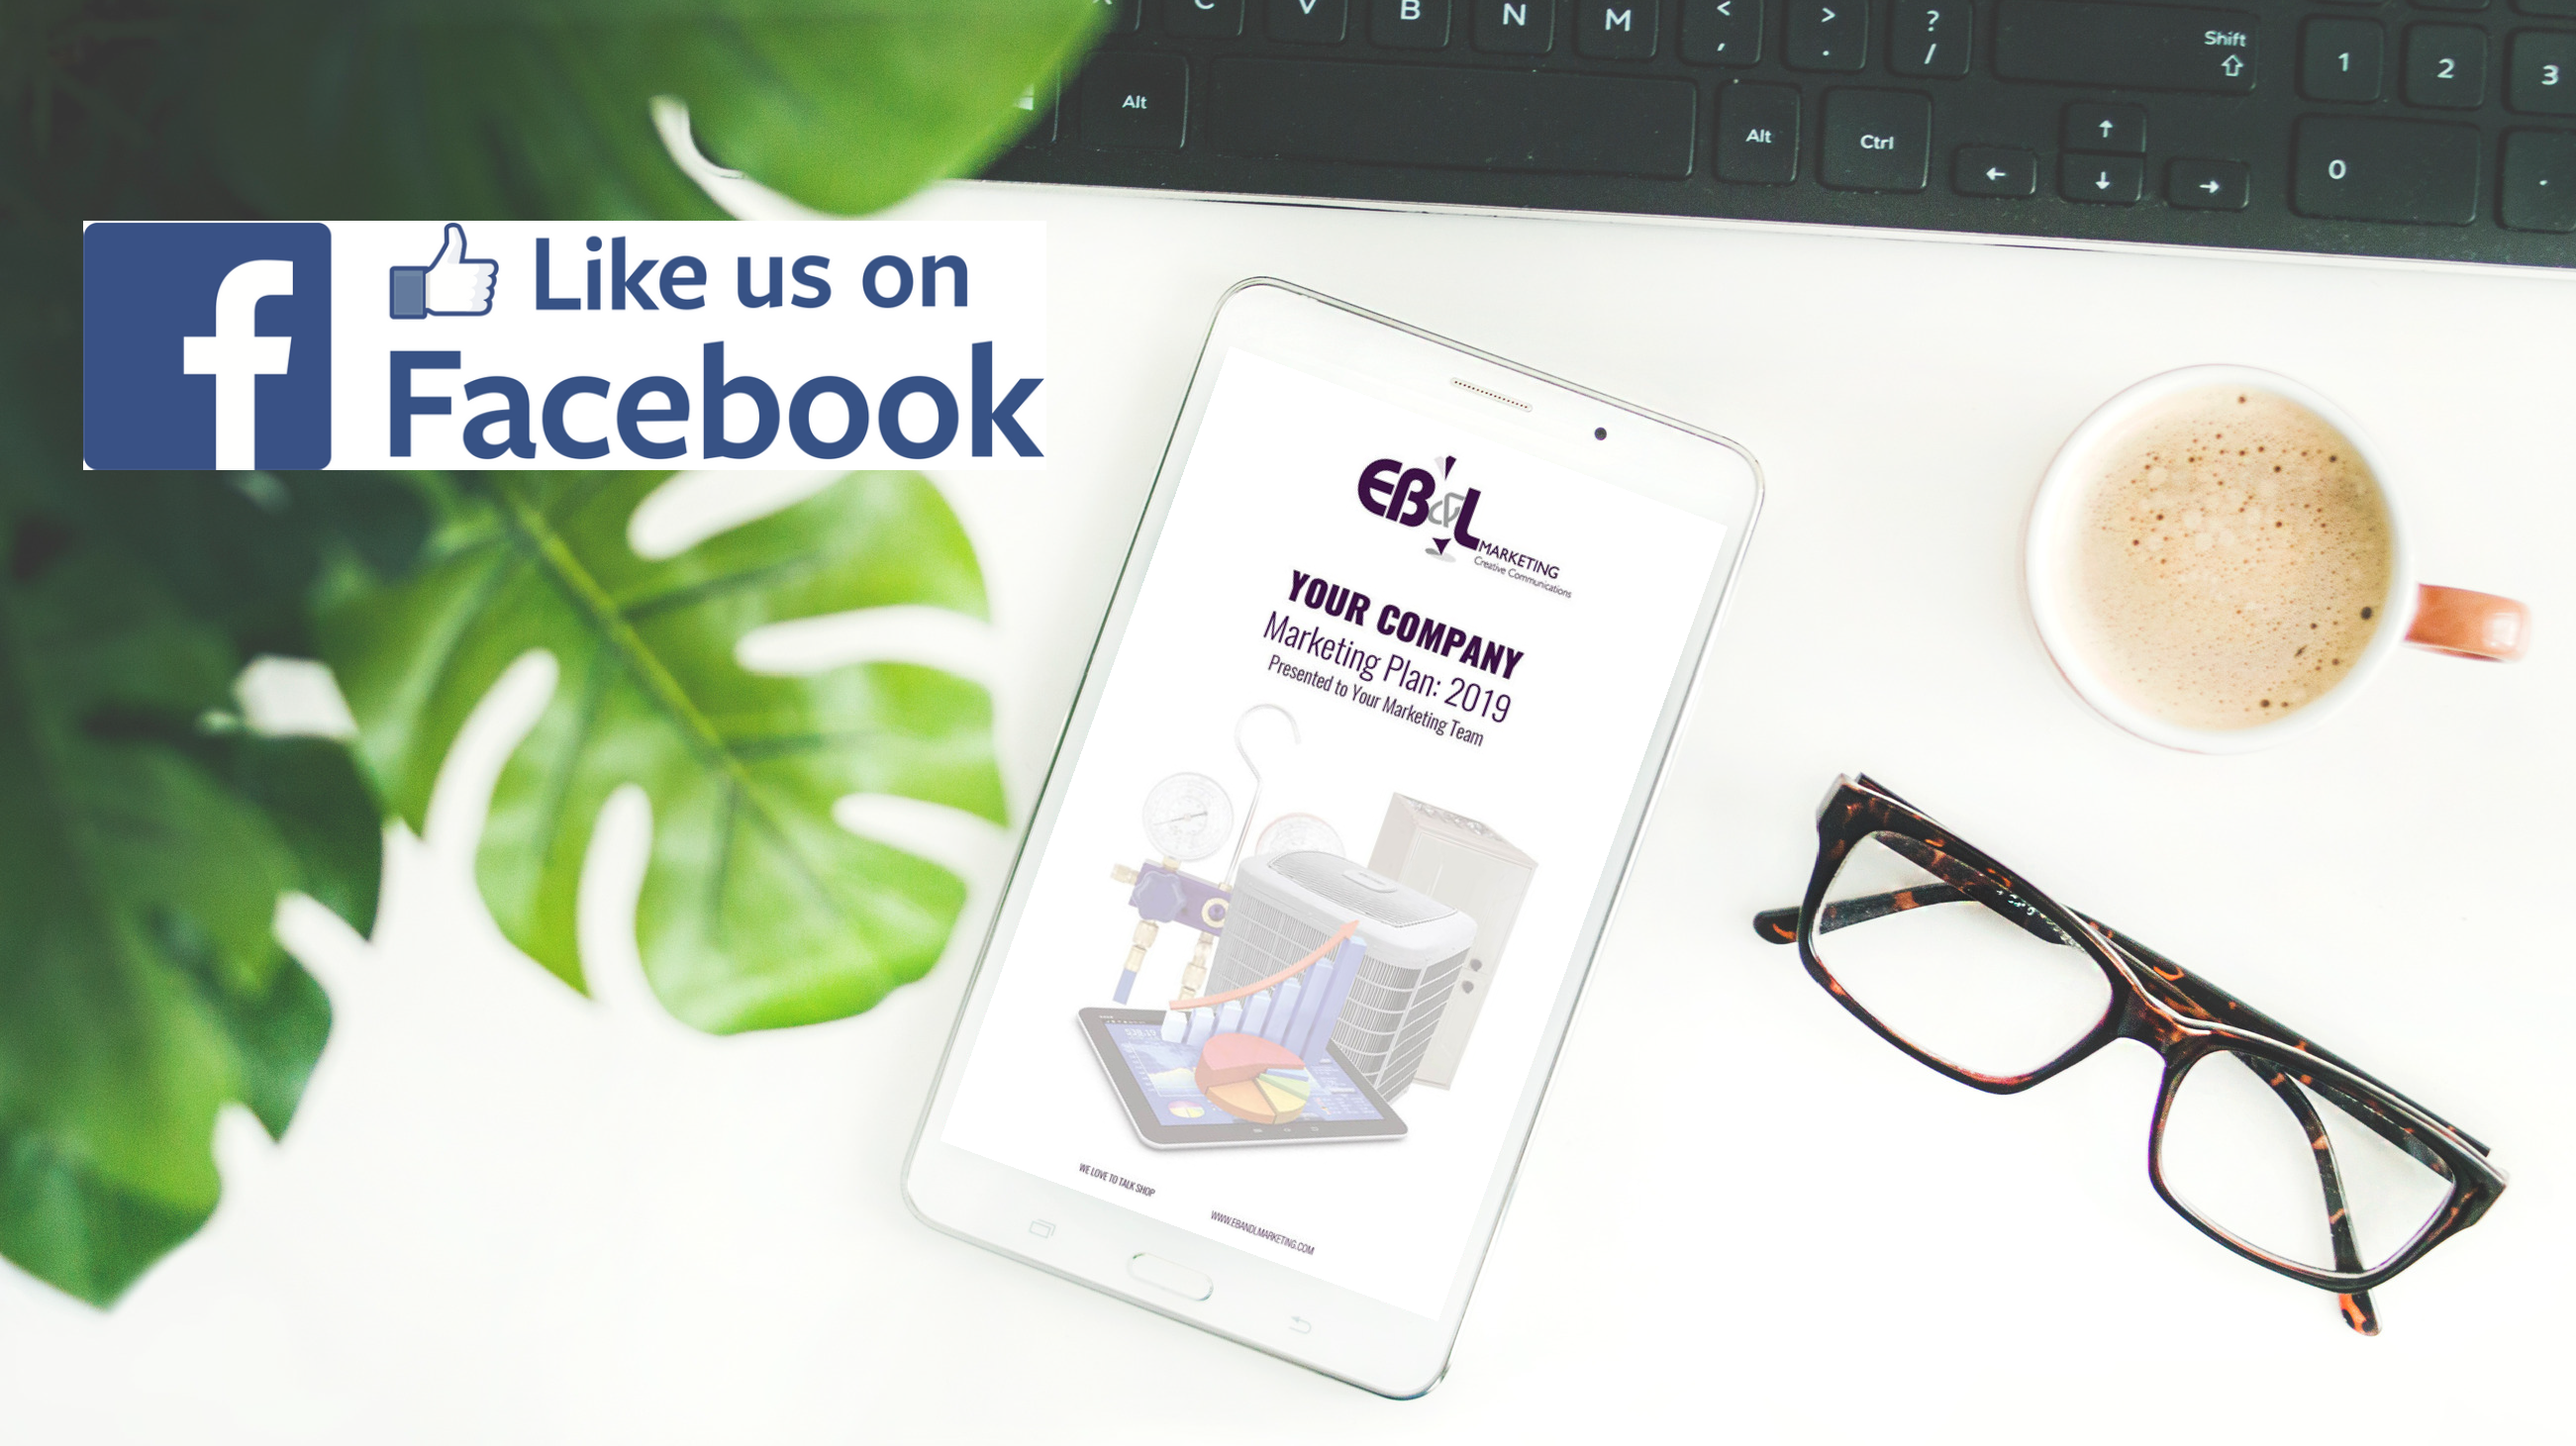 Facebook Contest Like EB&L Marketing page